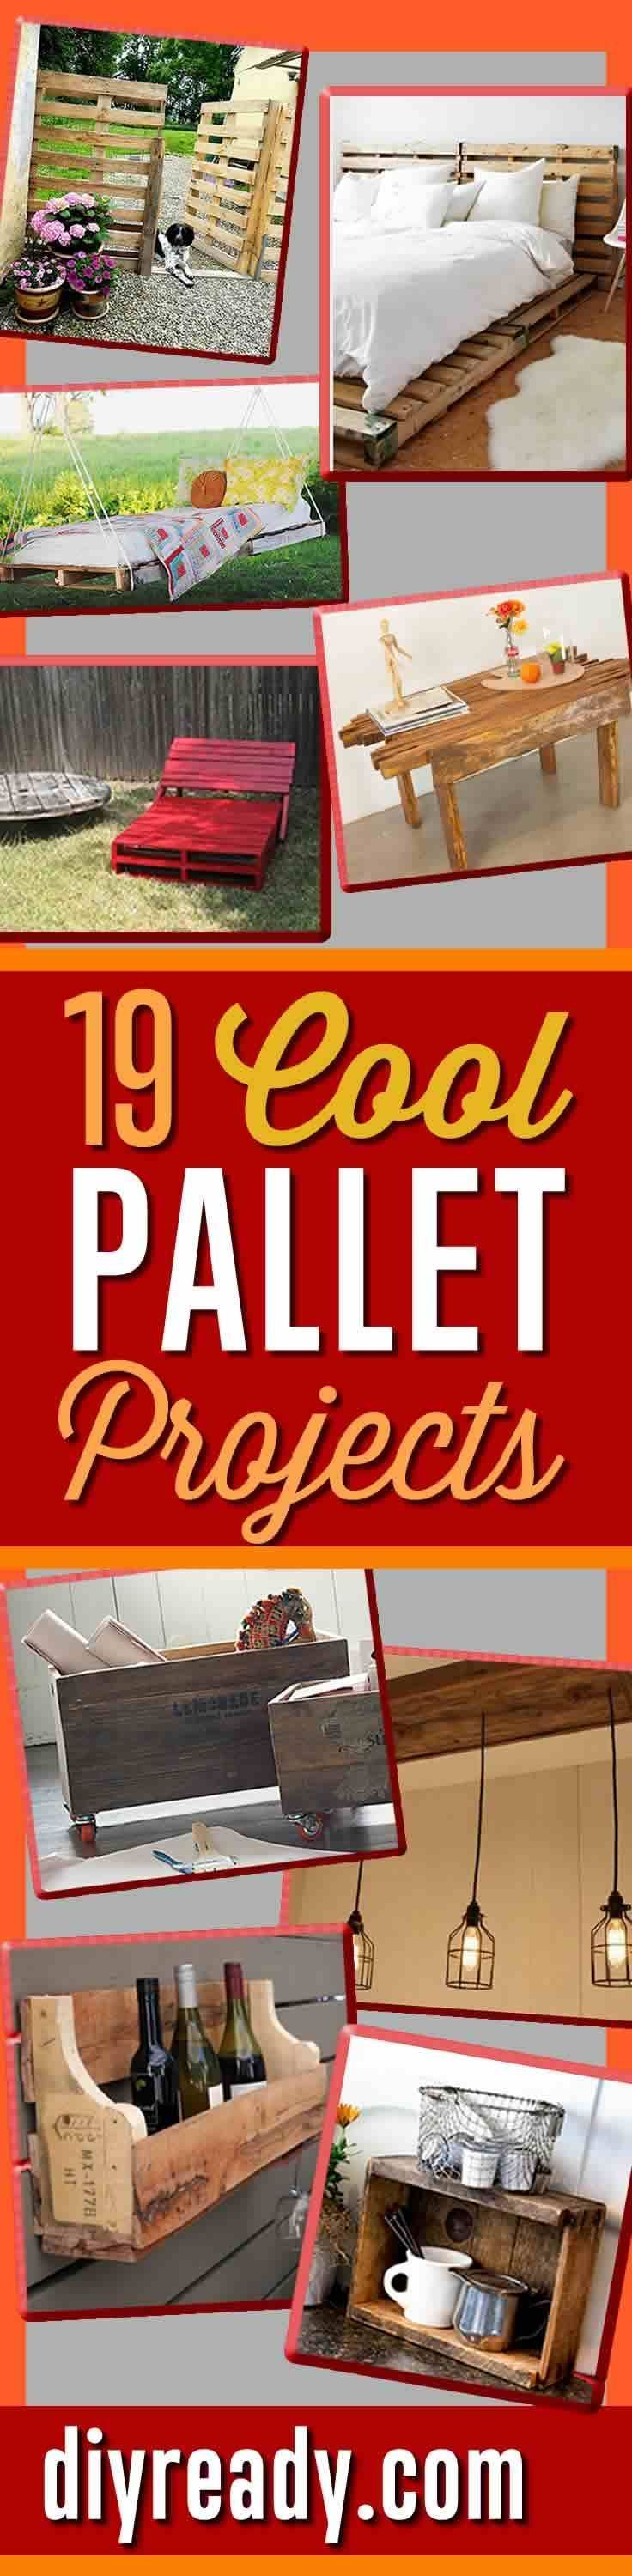 best pallet projects images on pinterest gutter garden